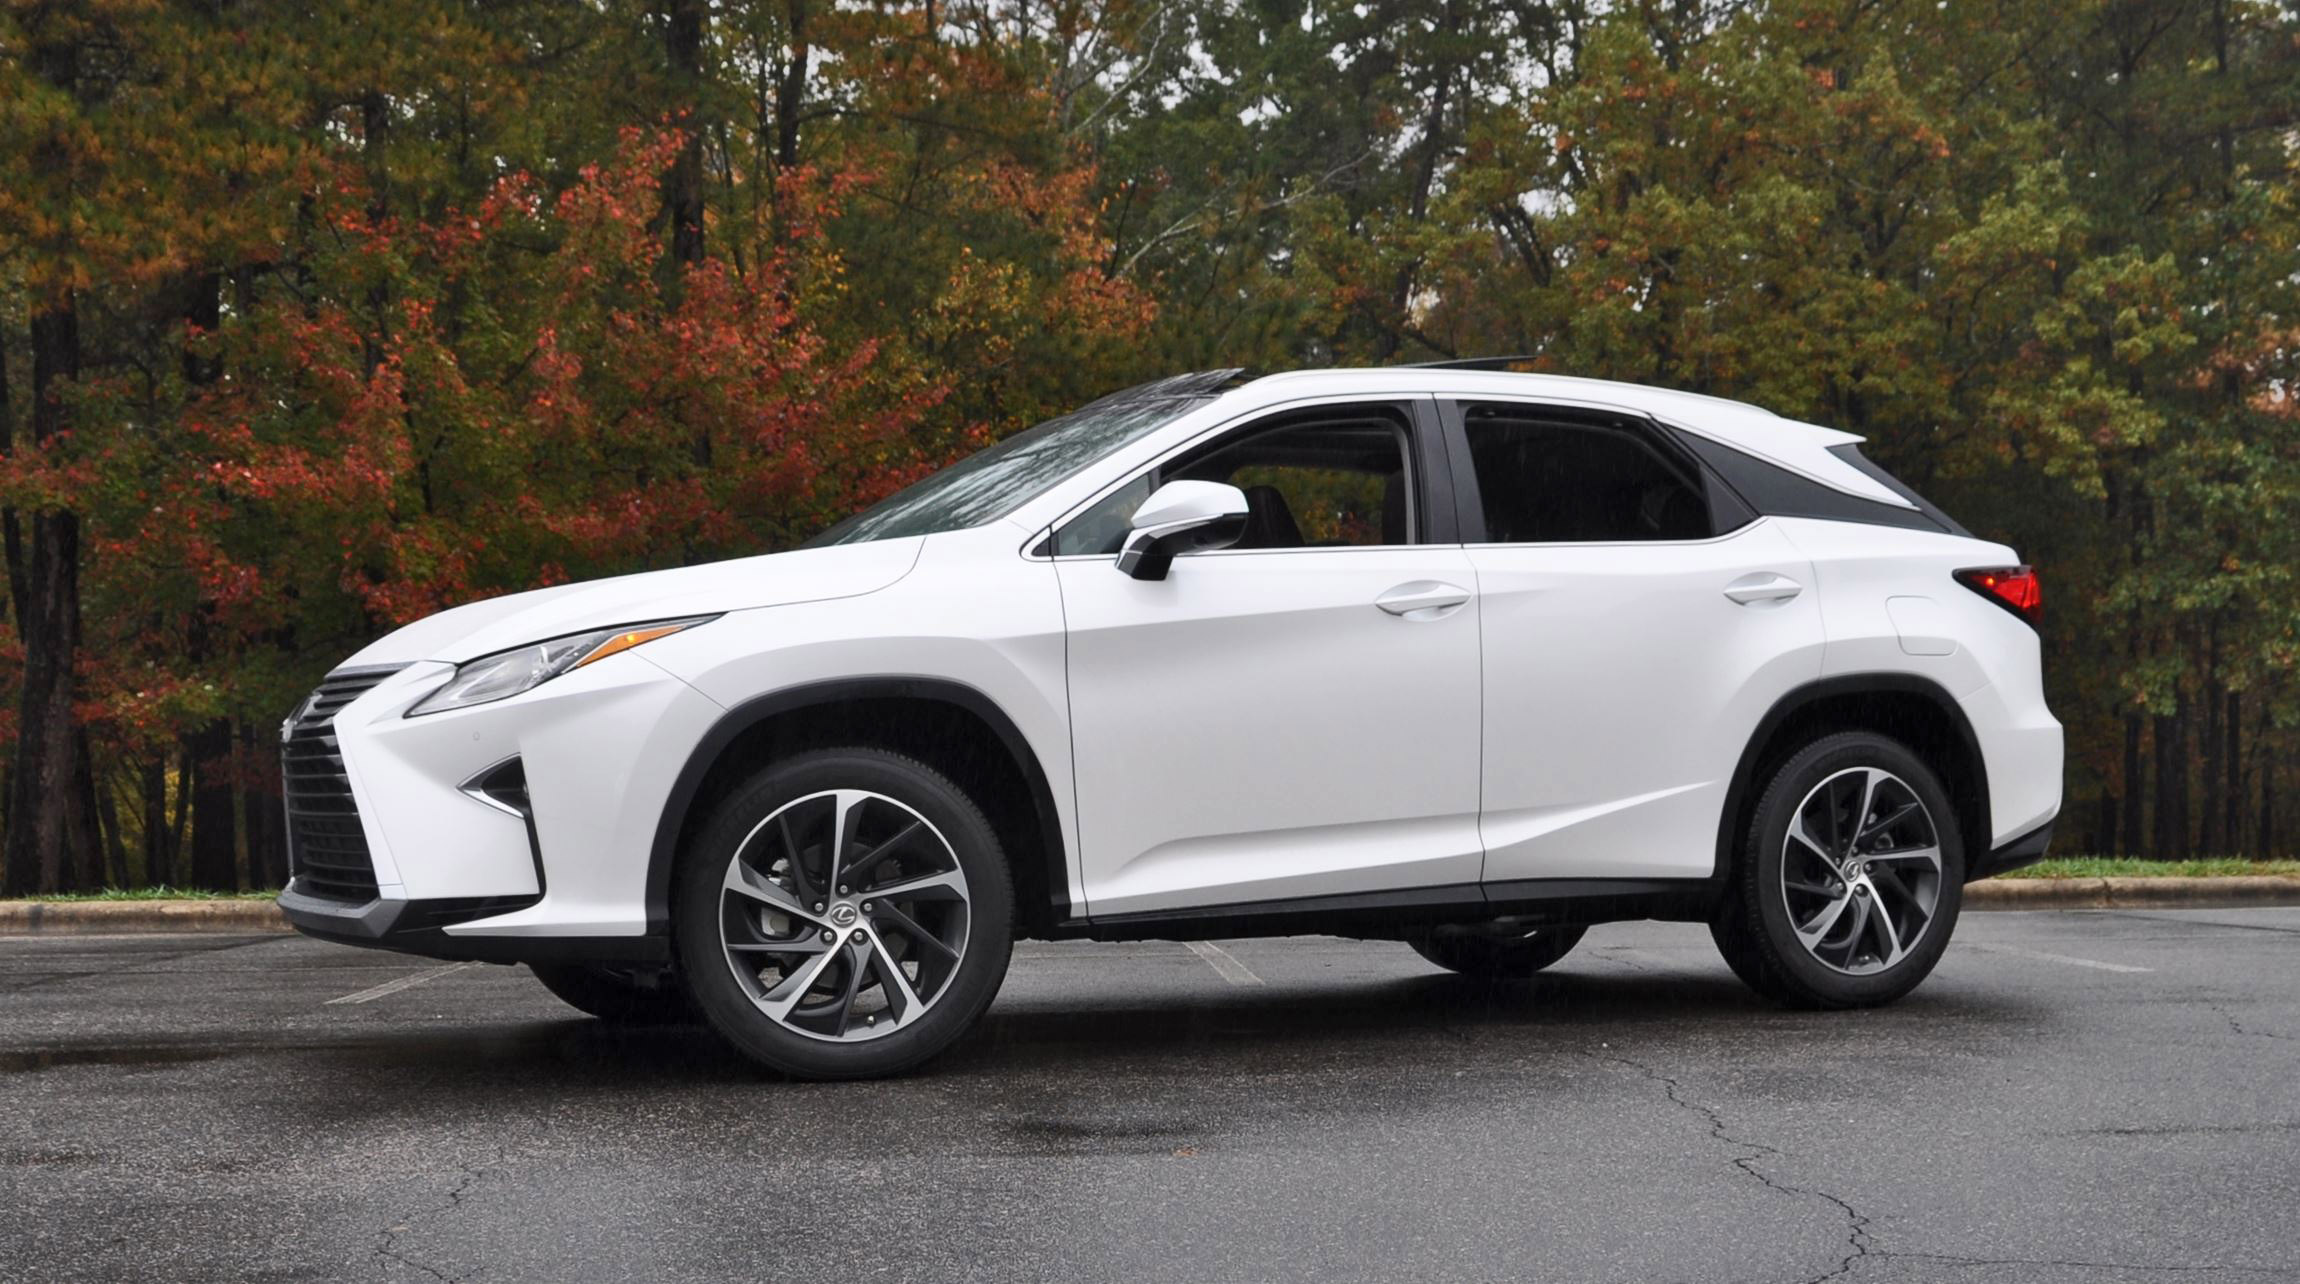 2016 Lexus RX350 Eminent White Pearl 36